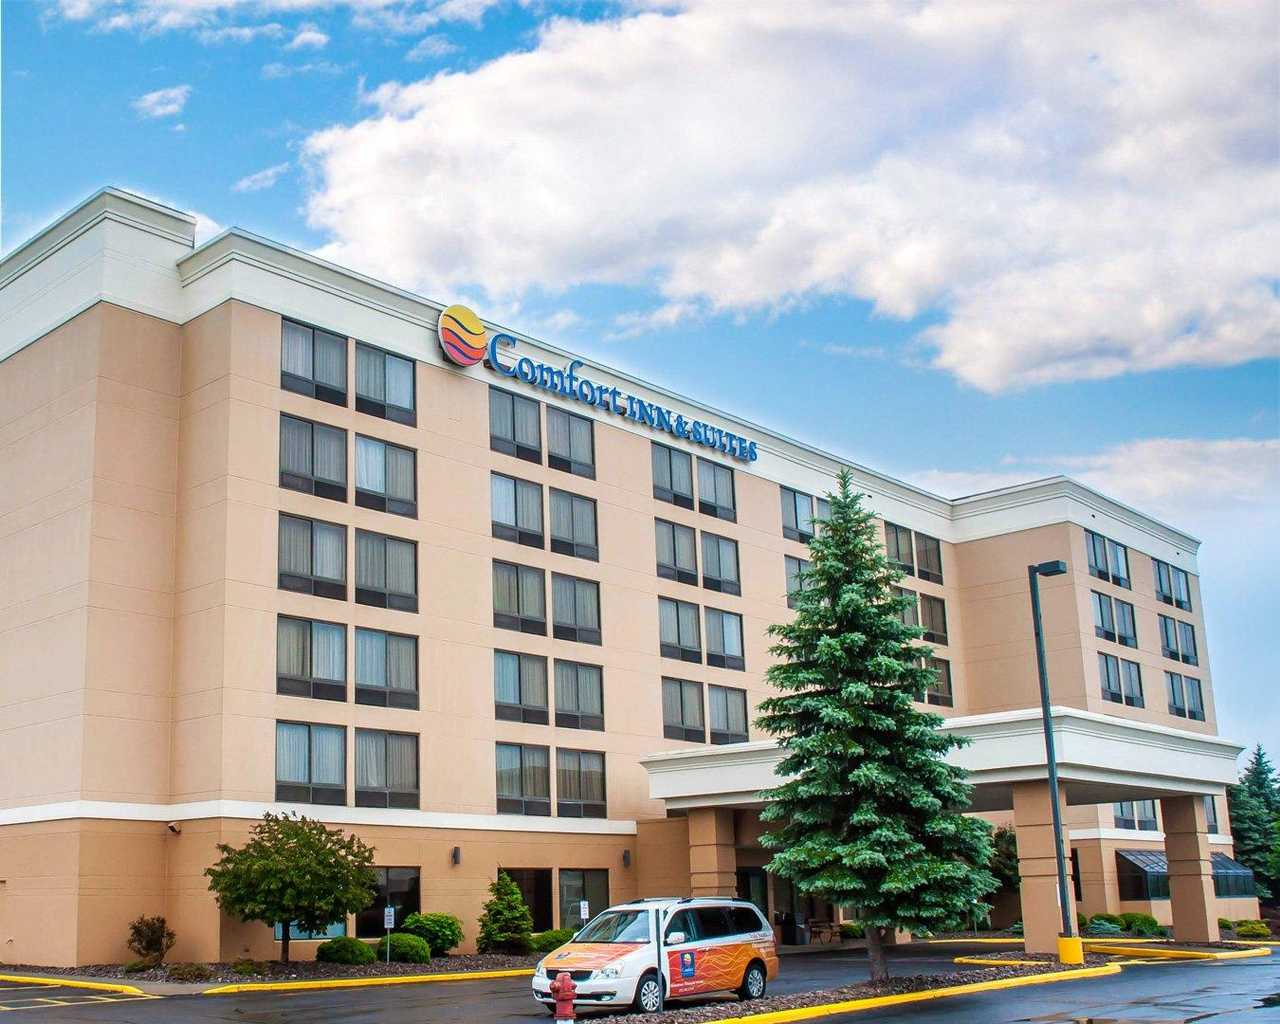 1 NIGHT STAY FOR 2 <br/> Donated by: COMFORT INN & SUITES <br/> Valued at: $100